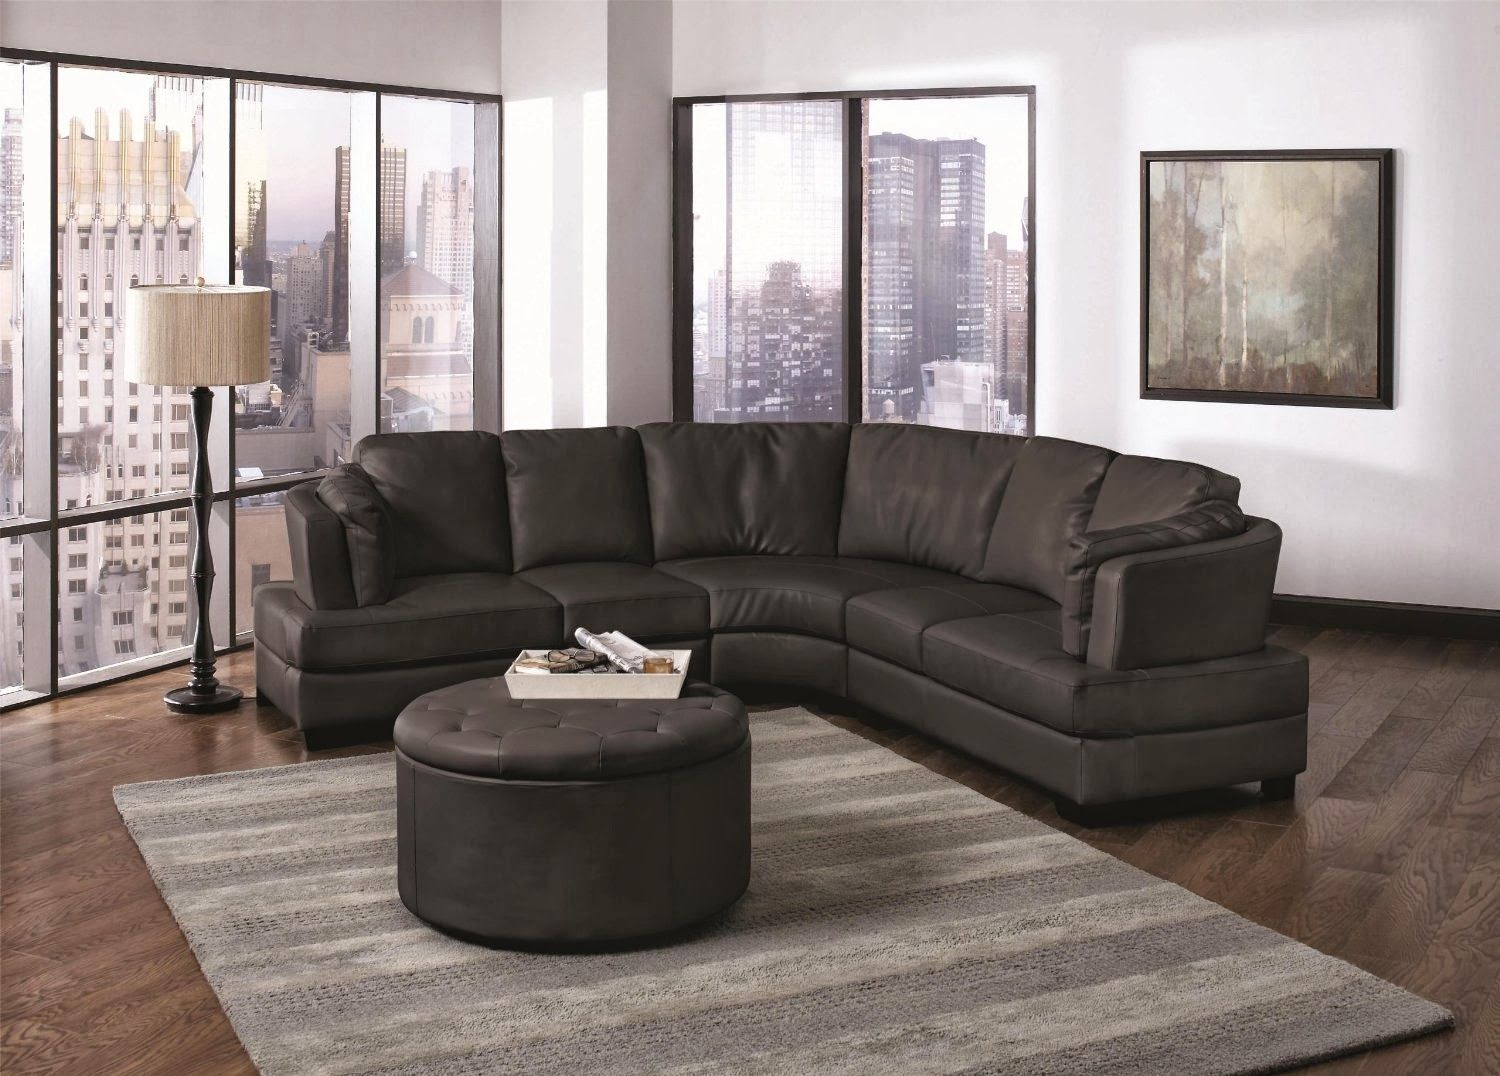 Count Them! Reasons Why You Should Buy Sofa Sectionals   Modern Sectional  Sofa   No Wonder That Sectional Sofas Appeal To Many Homeowners And  Interior ...